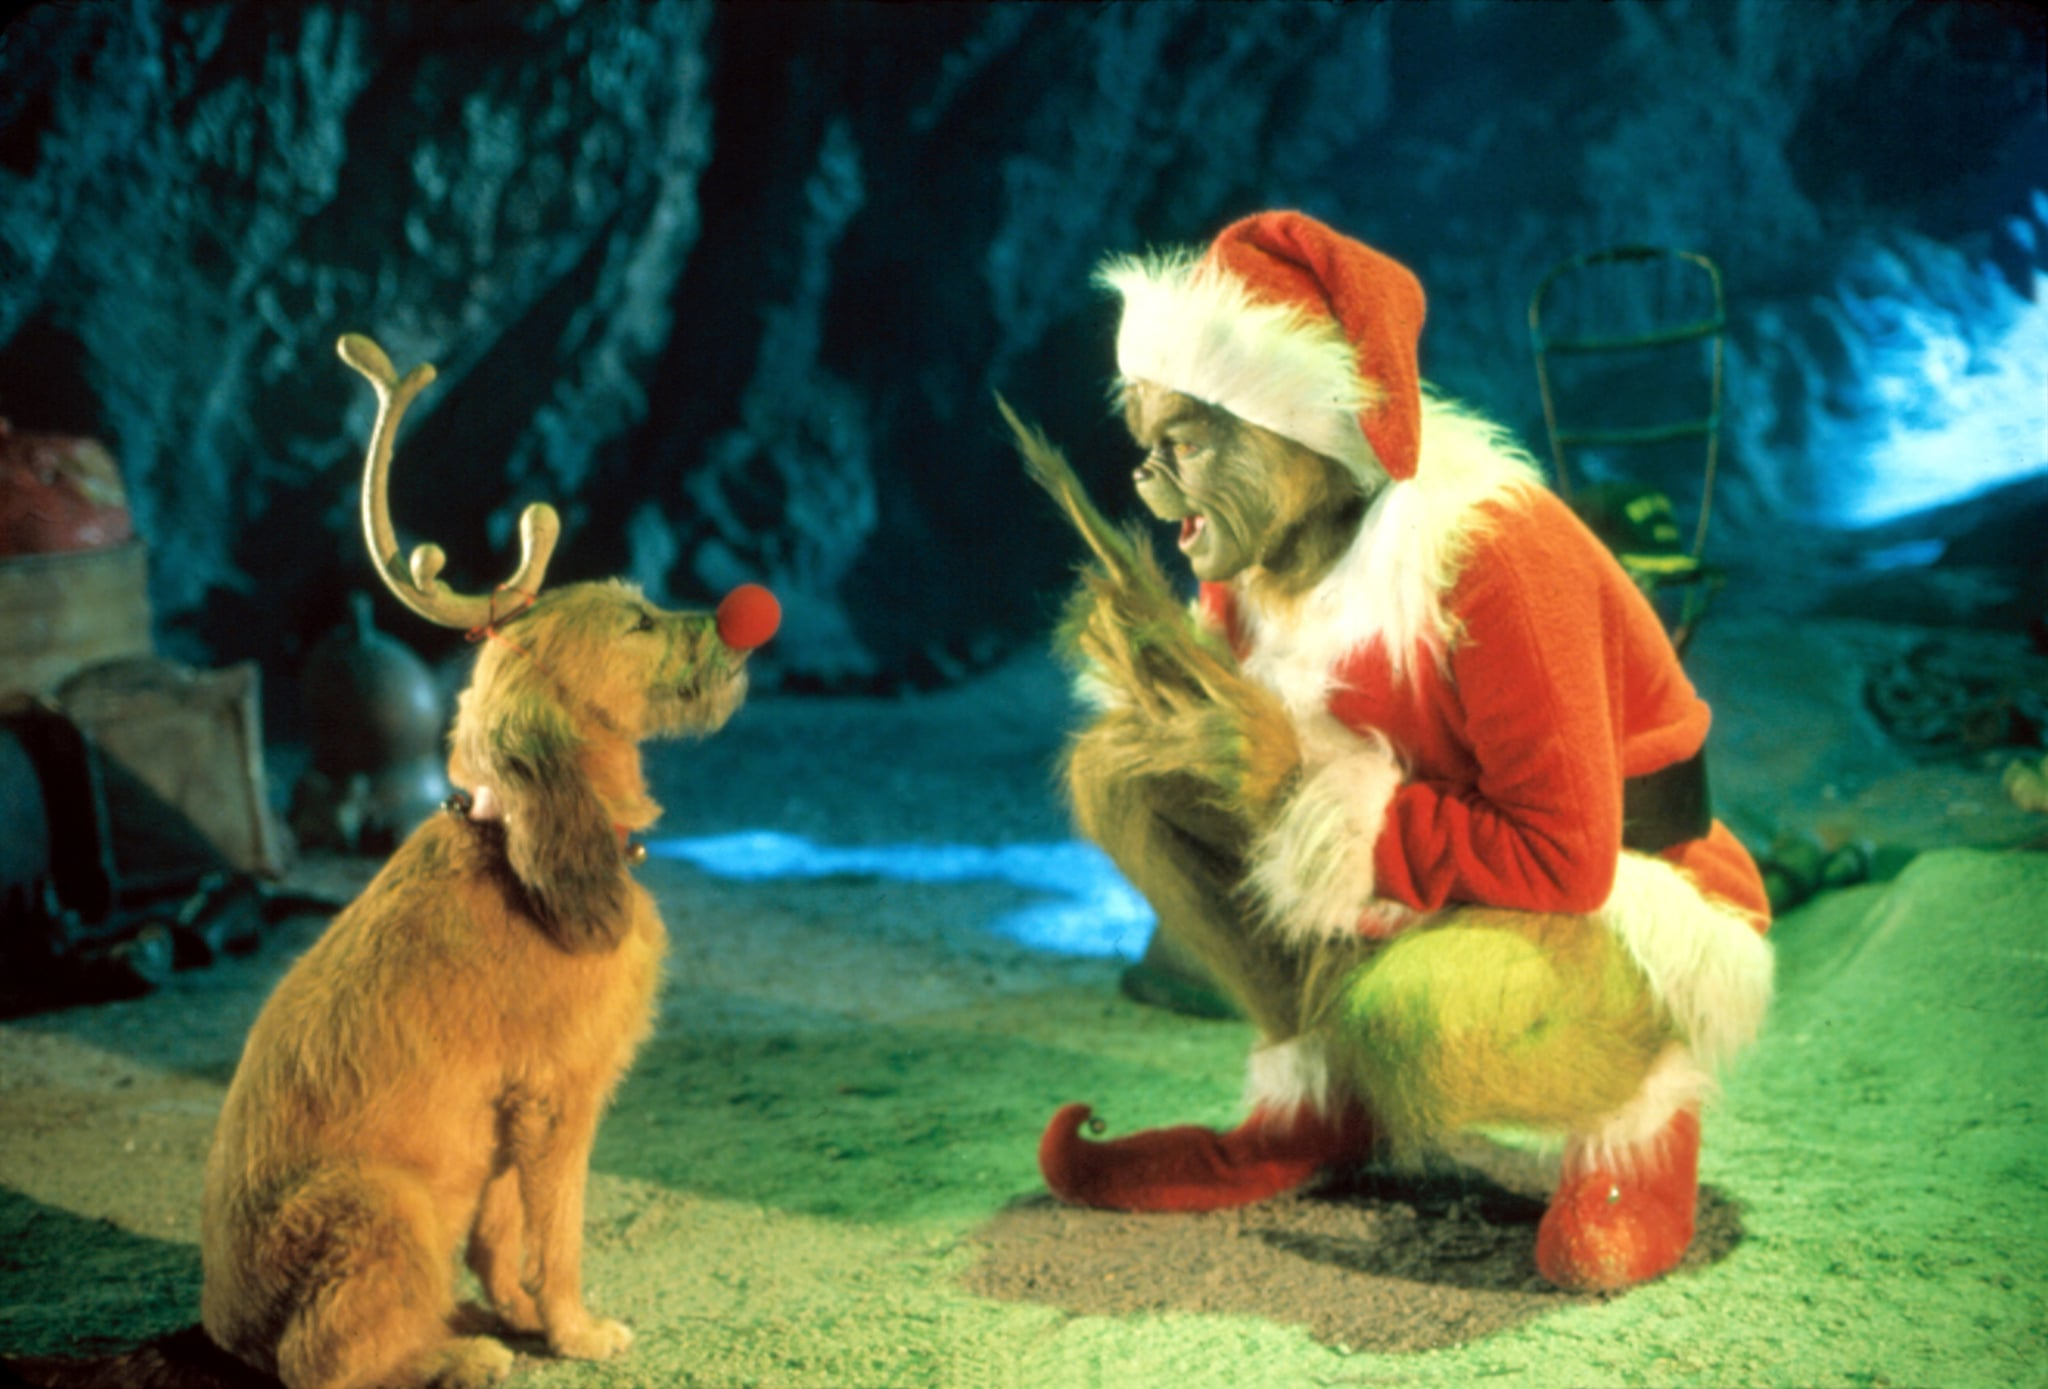 The Grinch and a dog talking.